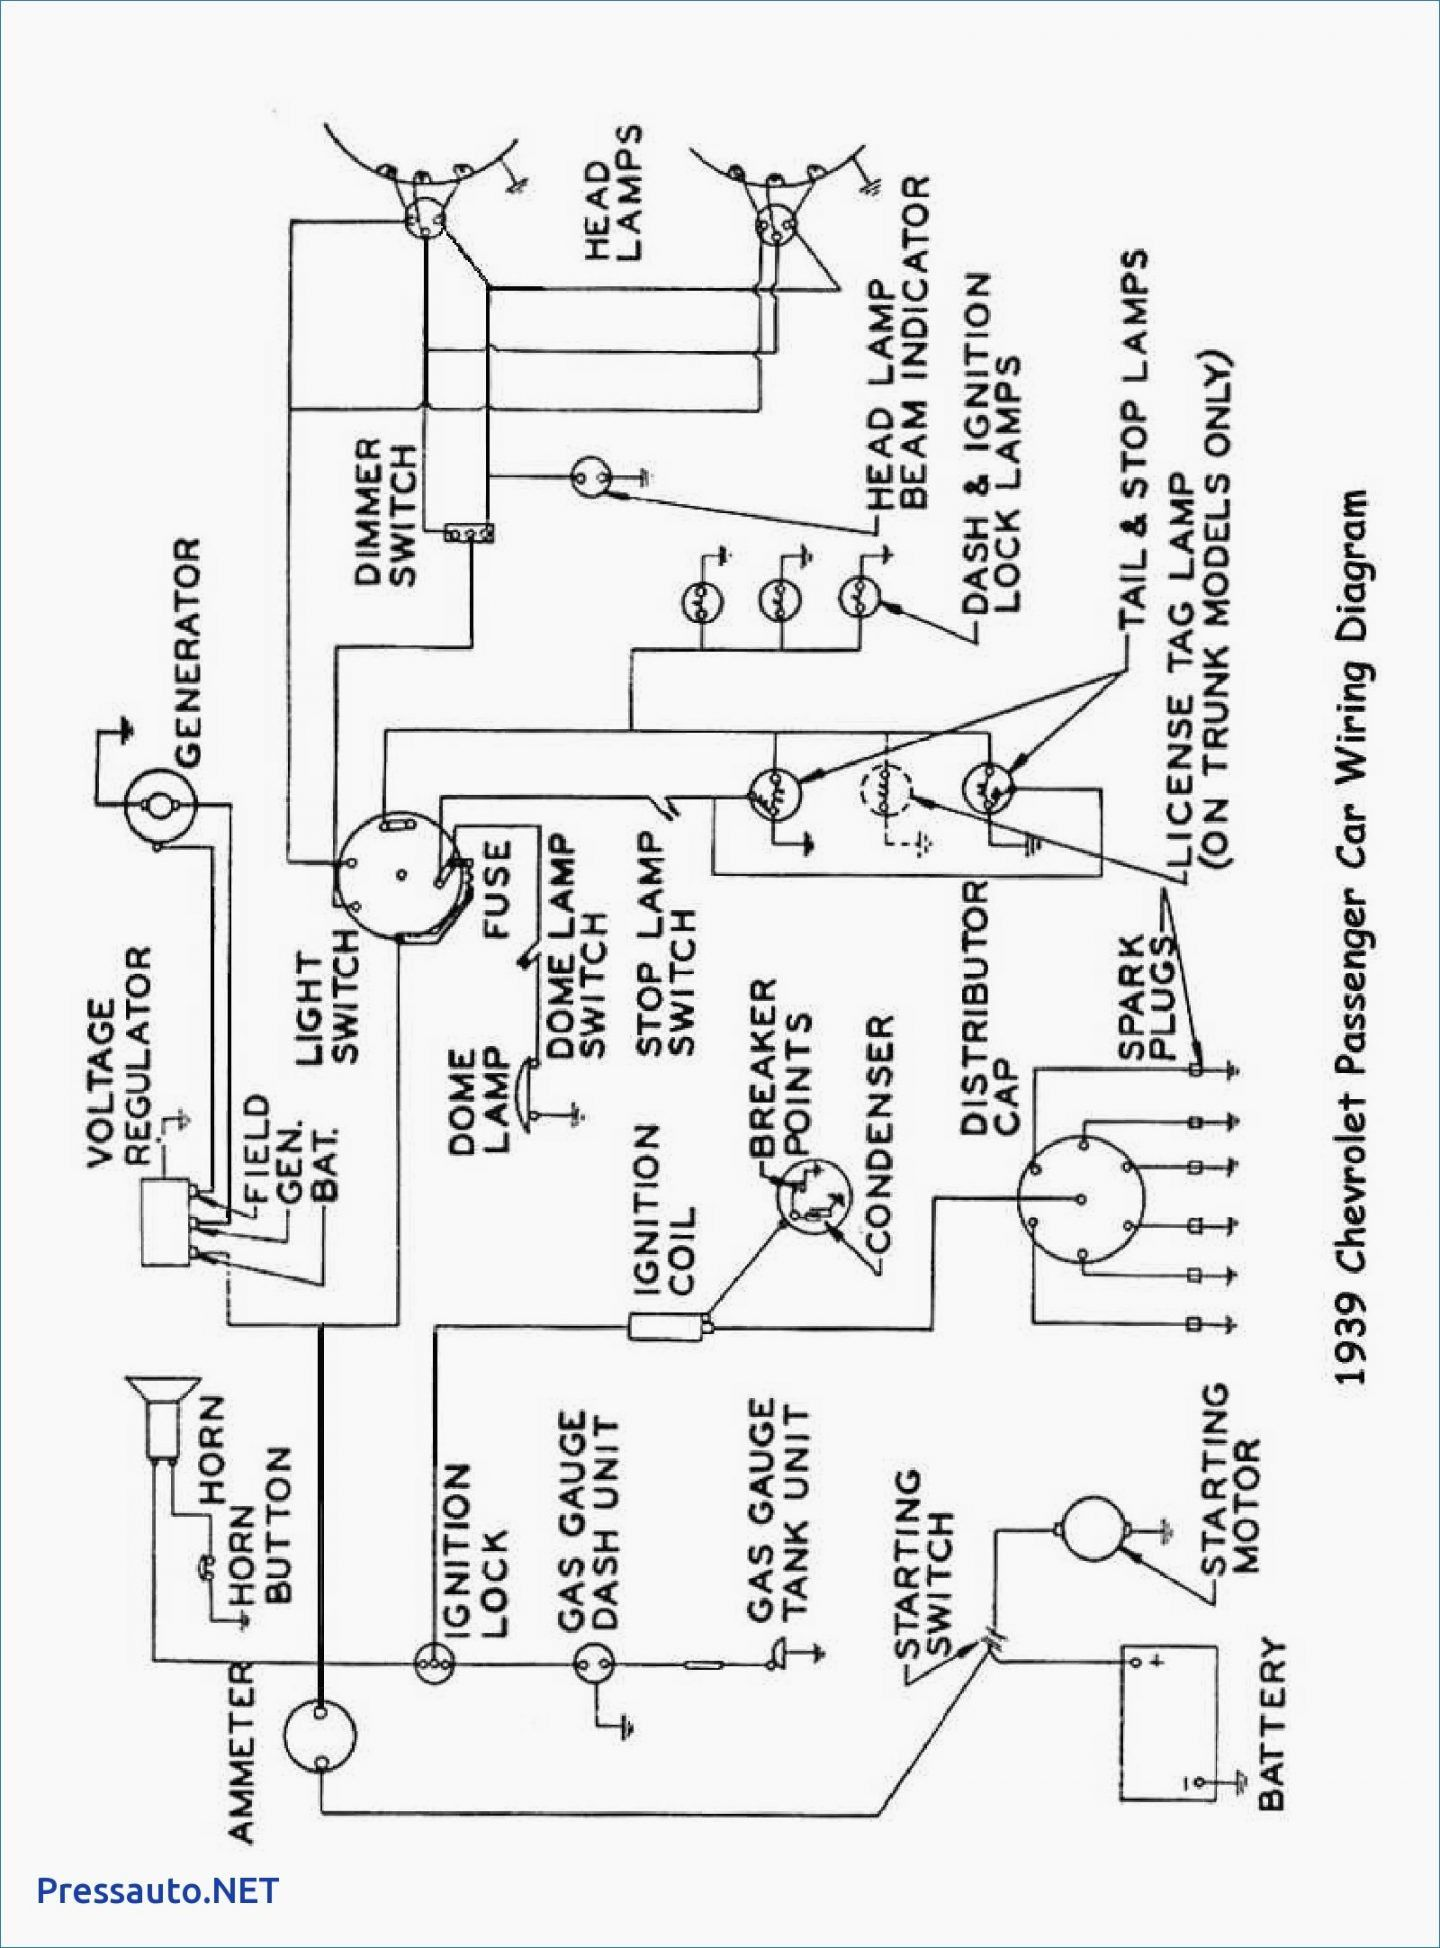 Wiring Diagram Welding Machine Inspirationa Best Of